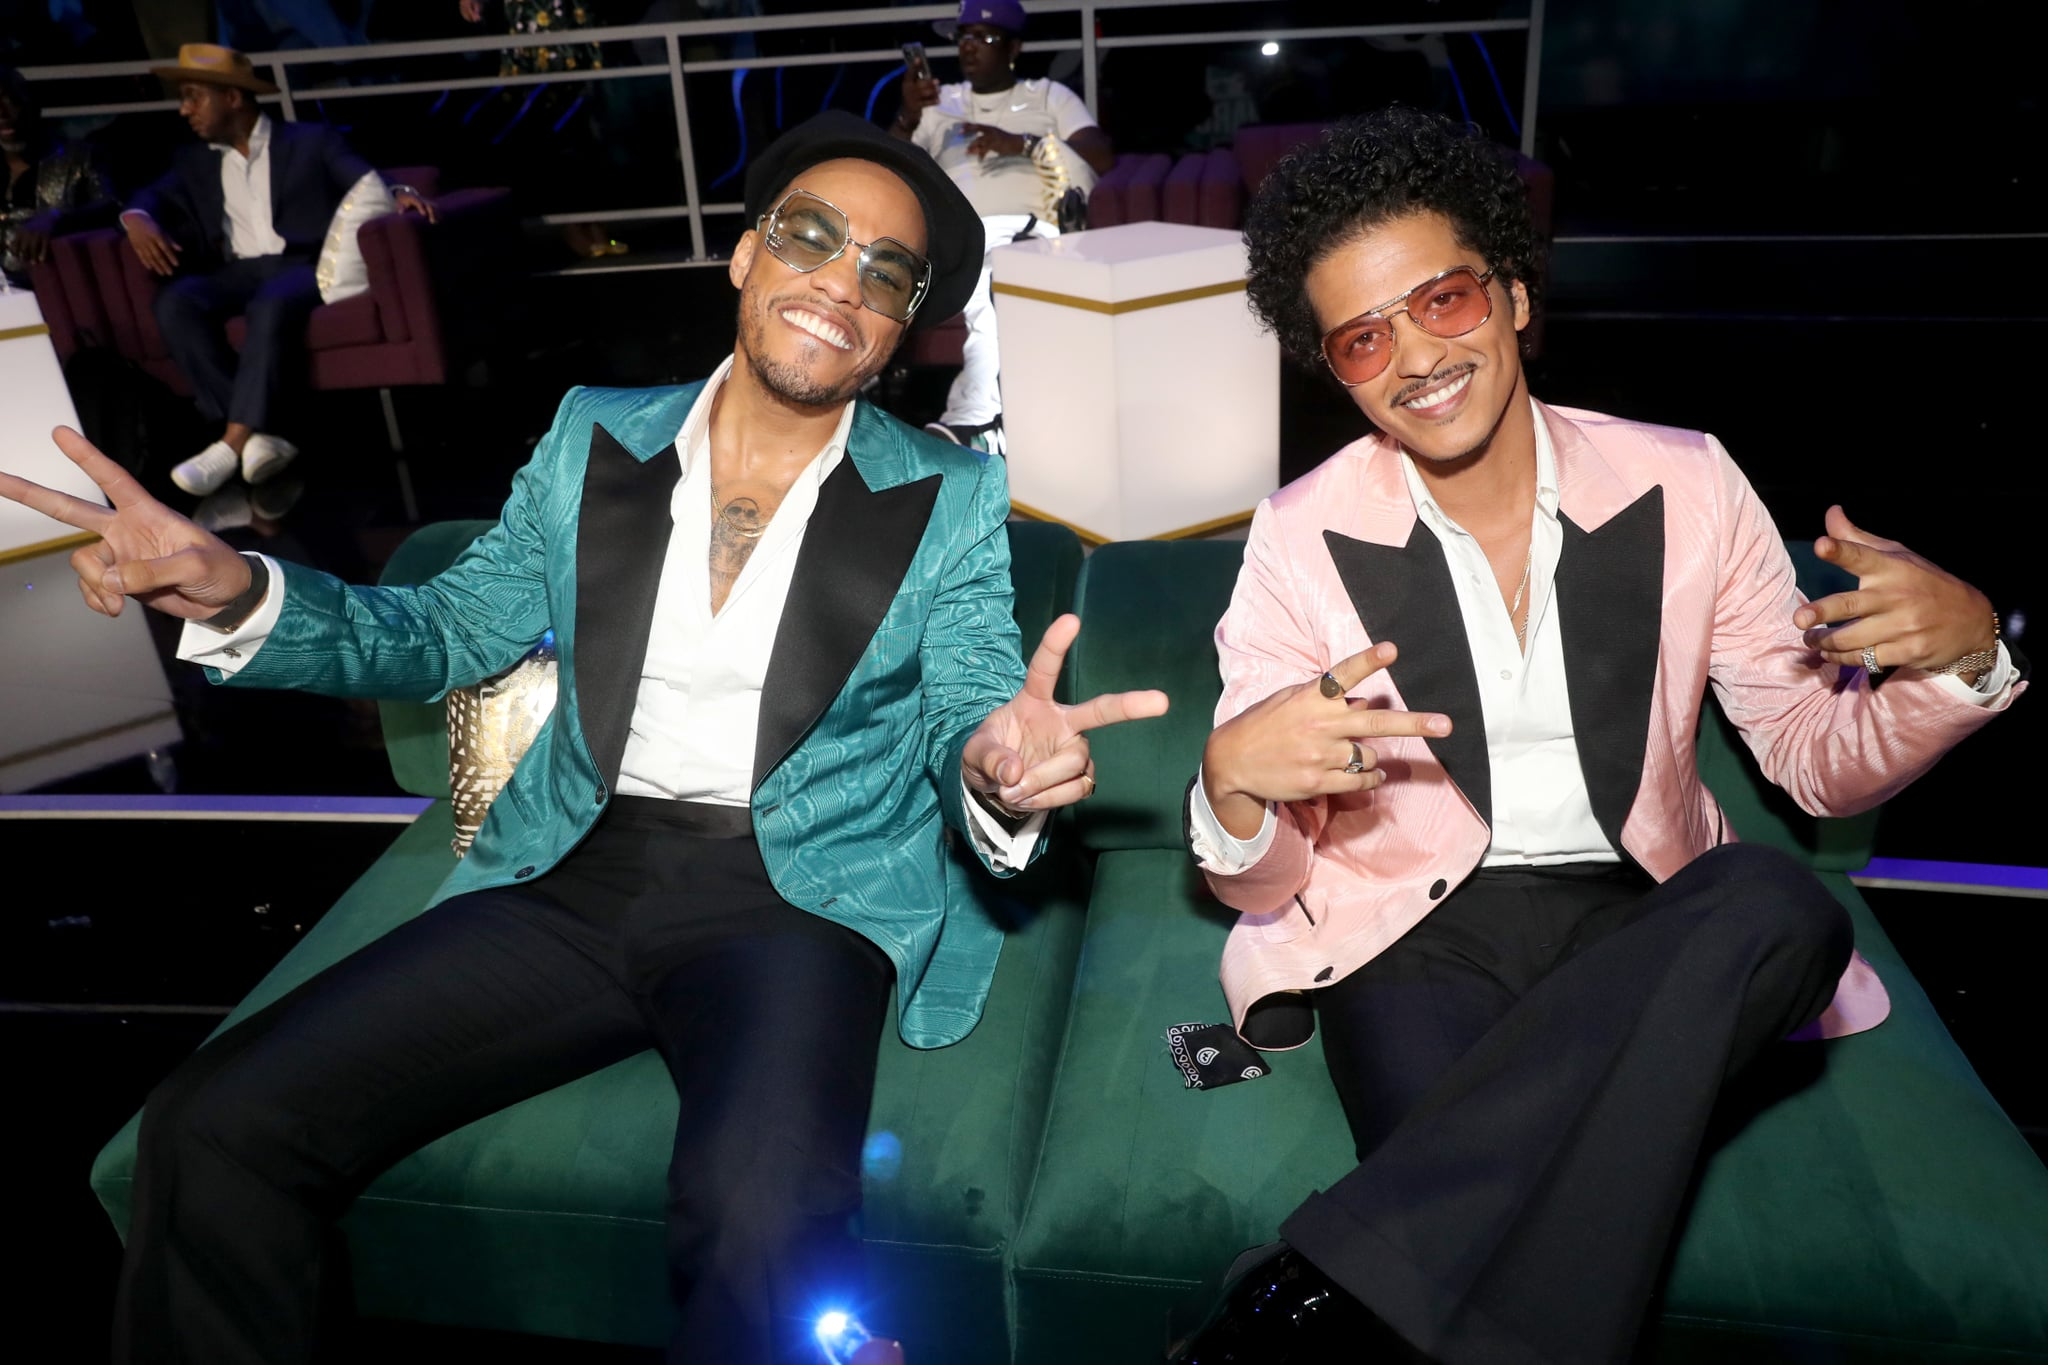 LOS ANGELES, CALIFORNIA - JUNE 27: (LR) Anderson .Paak and Bruno Mars attended the BET Awards 2021 at the Microsoft Theater on June 27, 2021 in Los Angeles, California.  (Photo by Johnny Nunez / Getty Photos for BET)